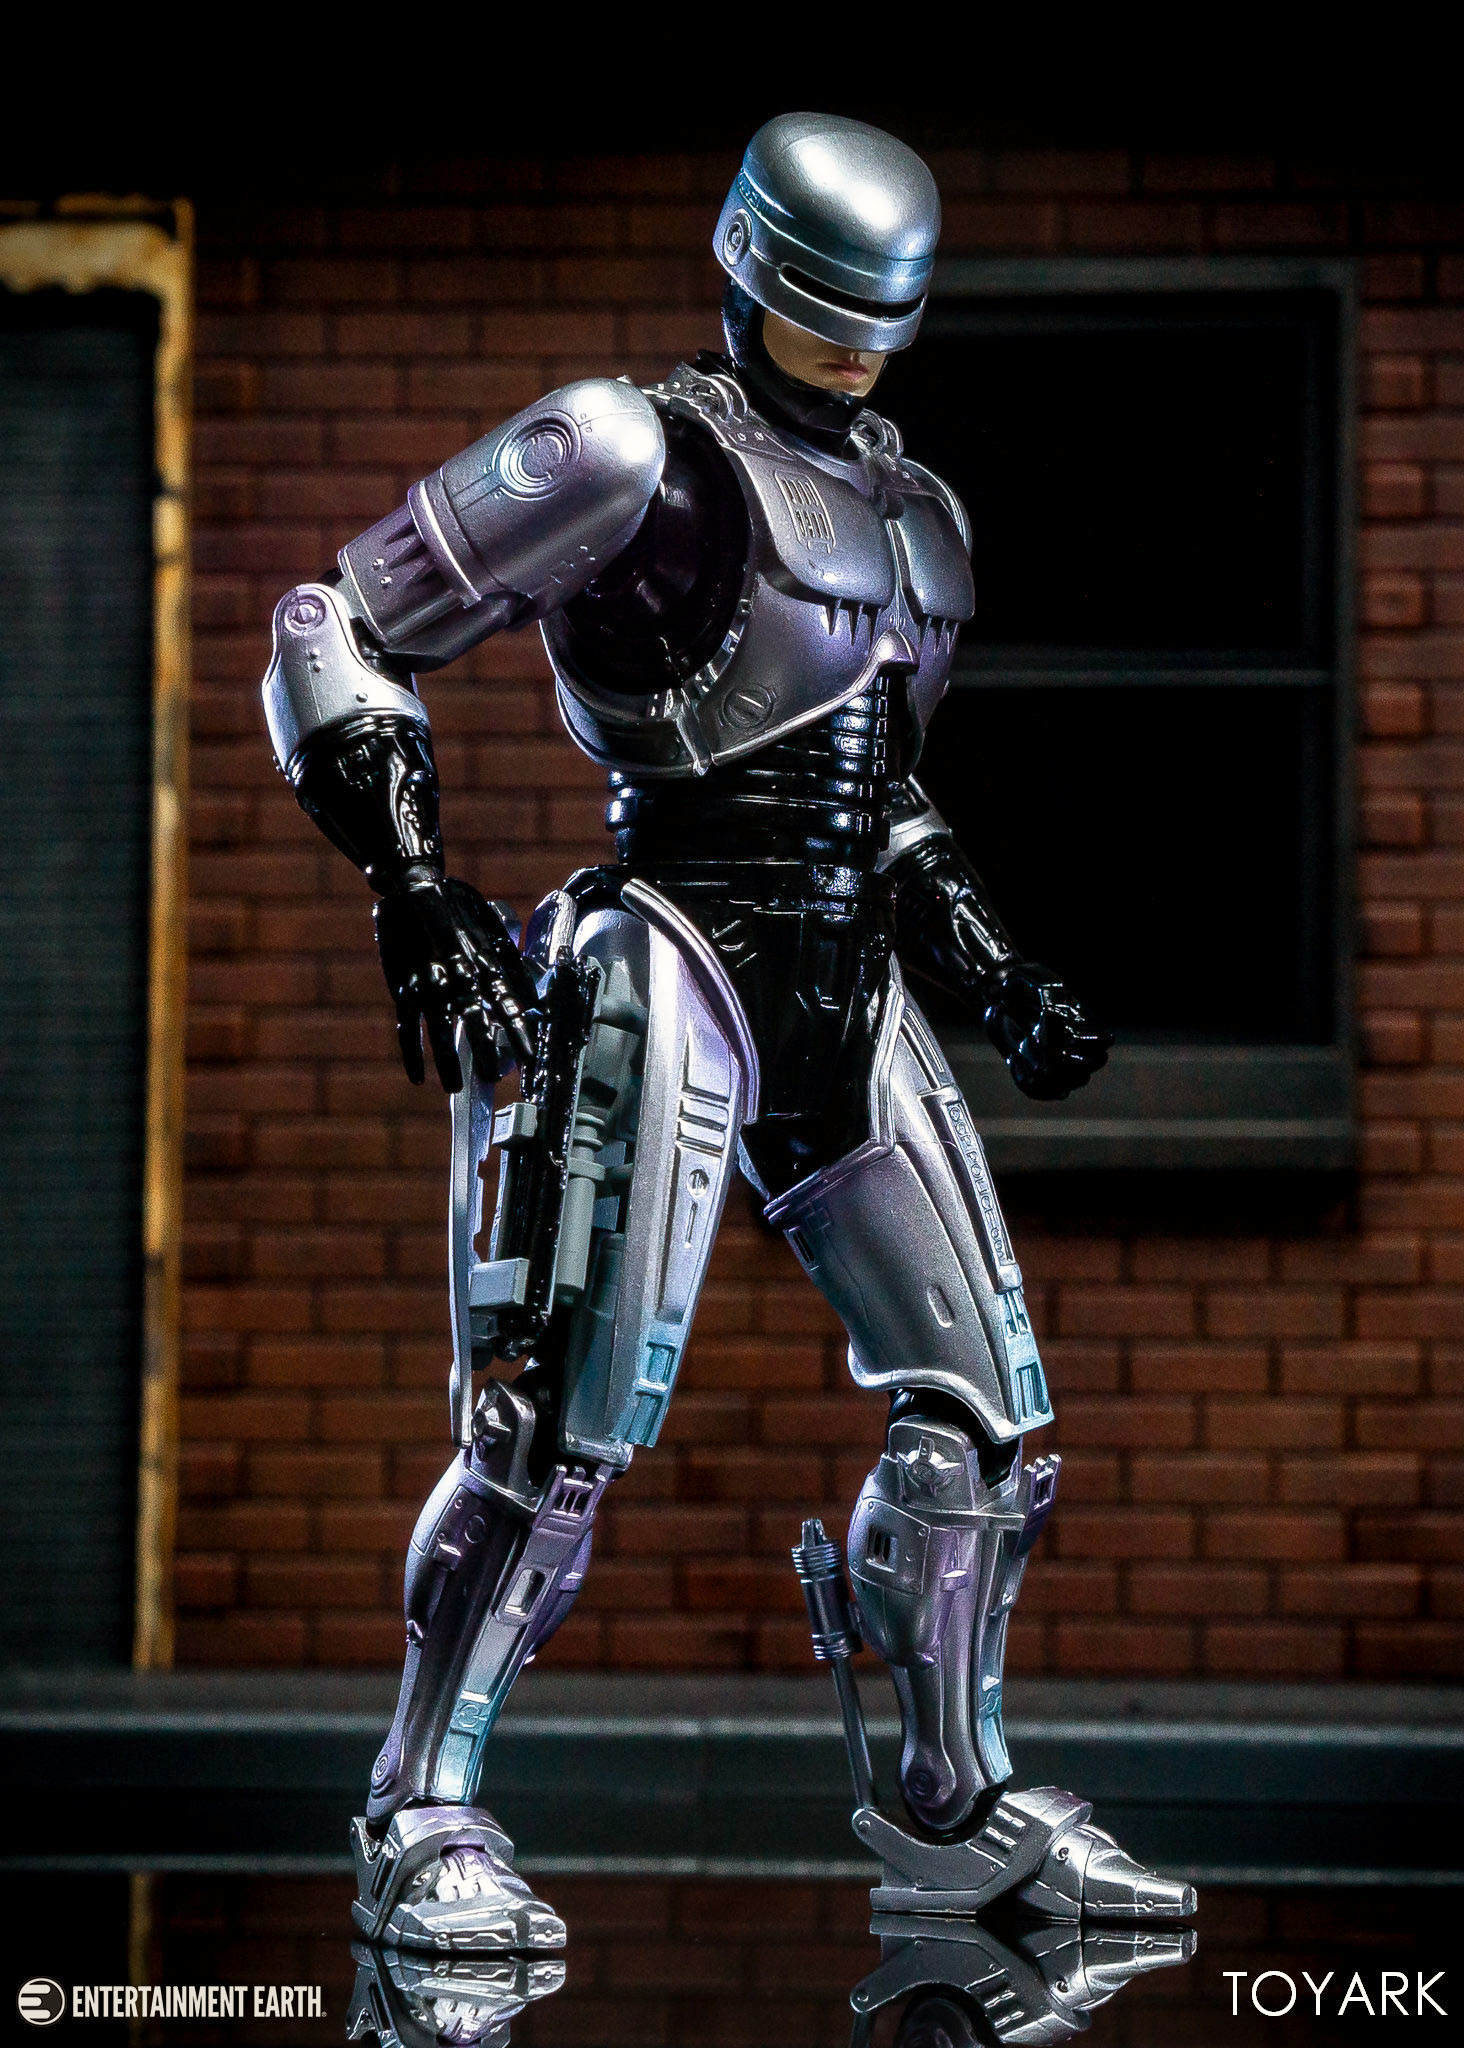 https://news.toyark.com/wp-content/uploads/sites/4/2019/03/MAFEX-Robocop-Gallery-007.jpg